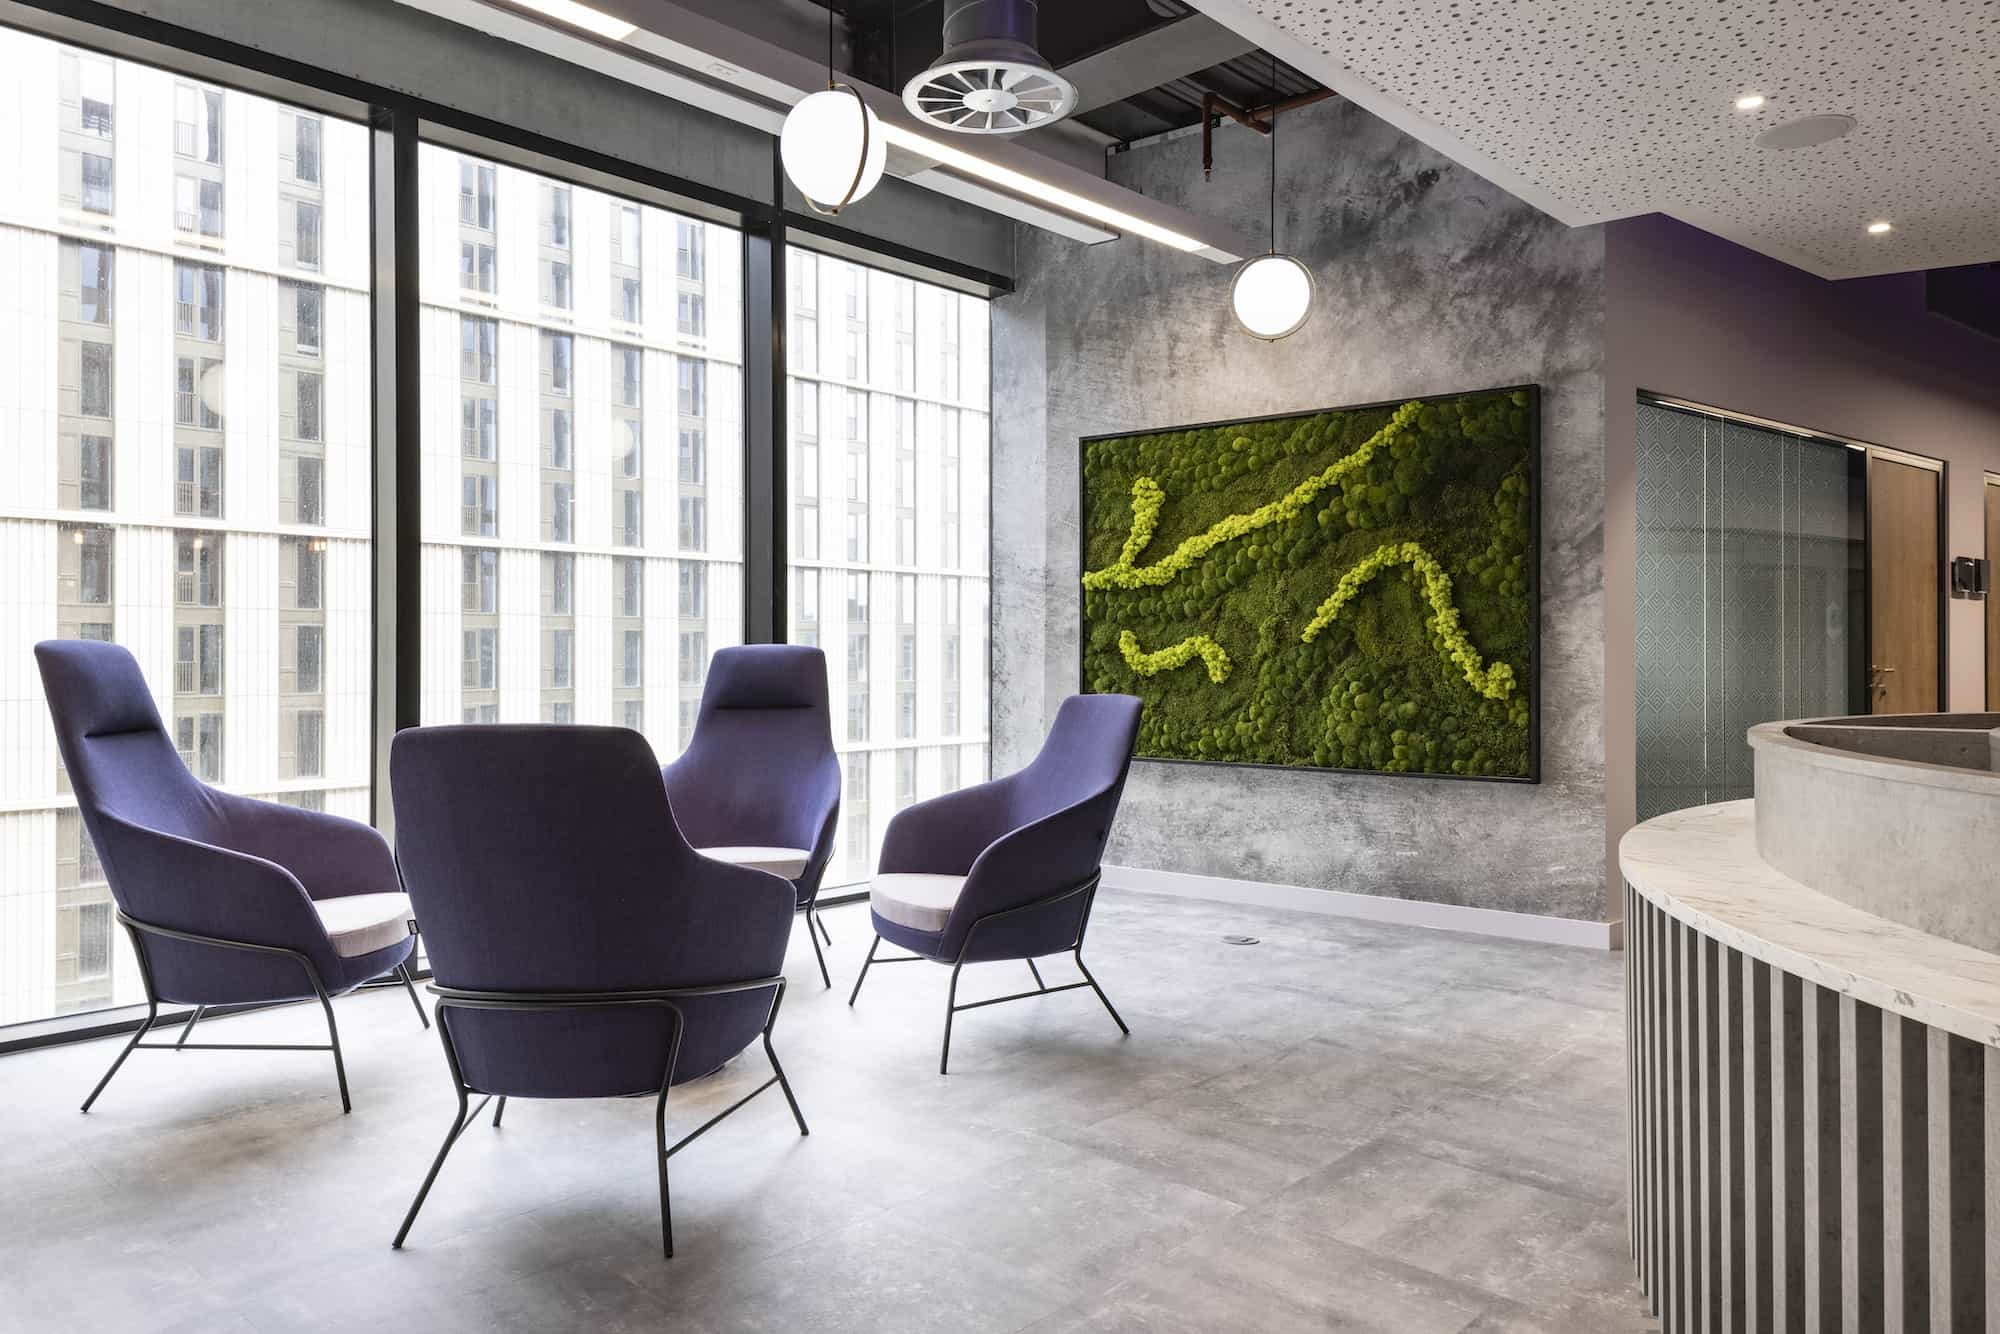 Mills Reeve biophilia wall and seating